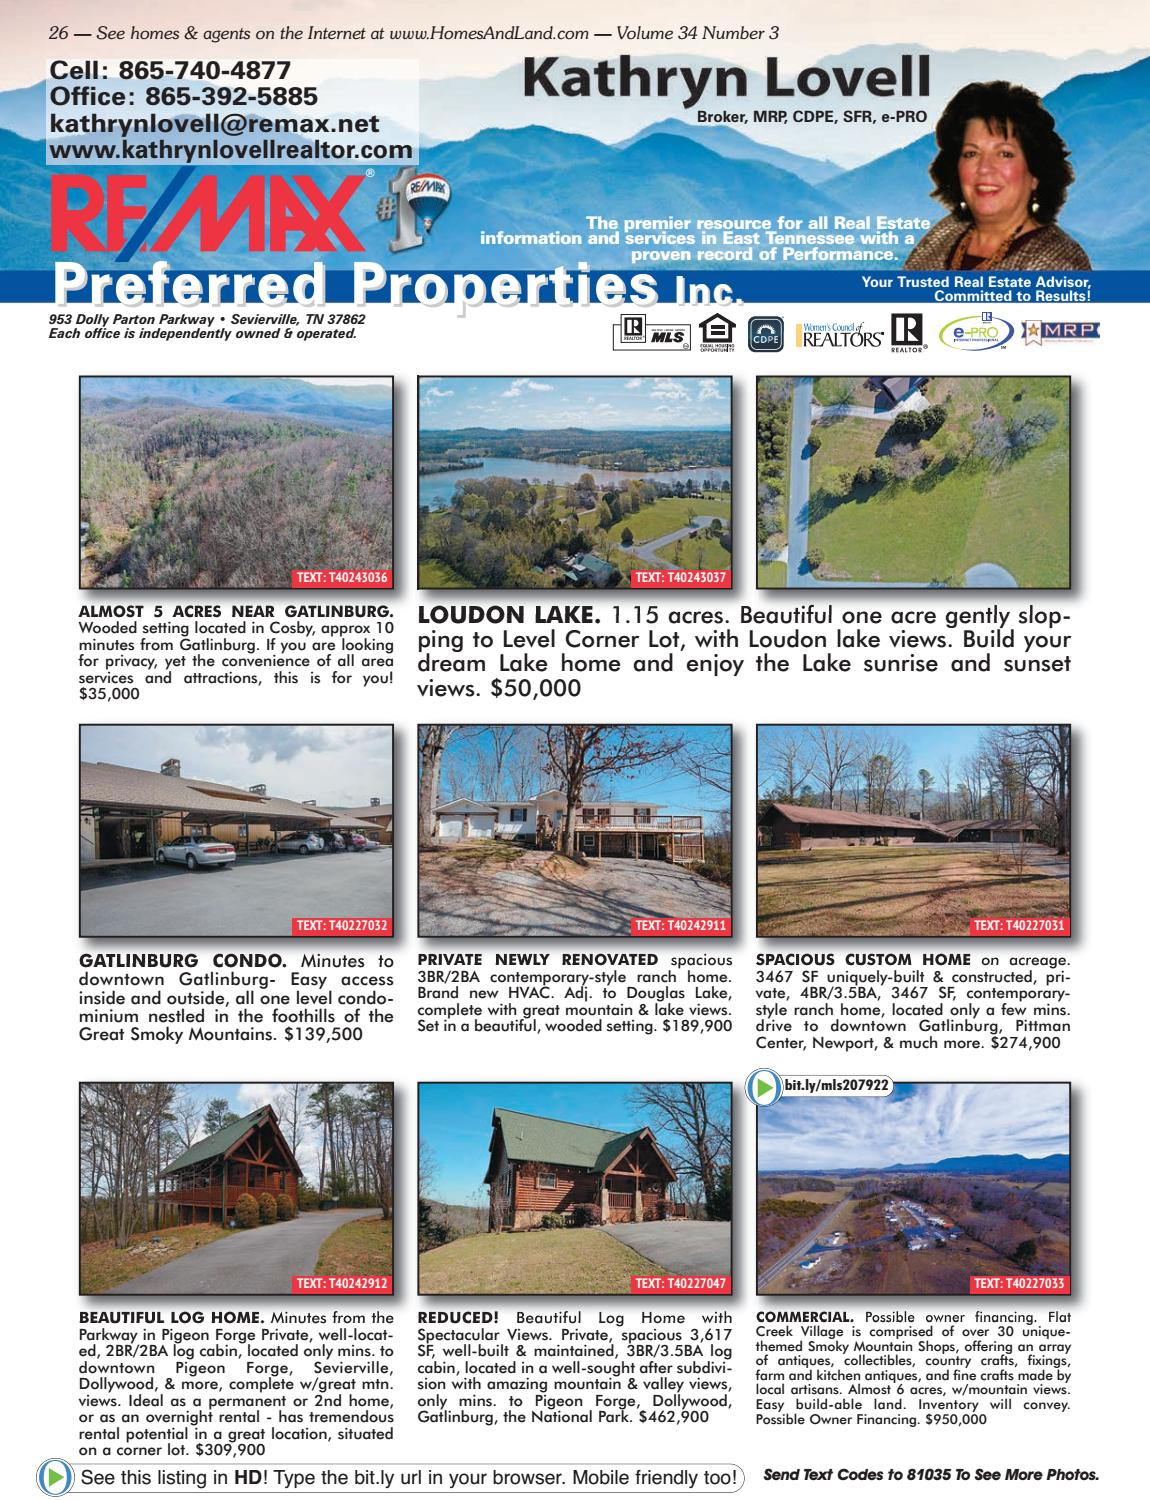 Homes & Land of the Smokies Vol 34 Issue 3